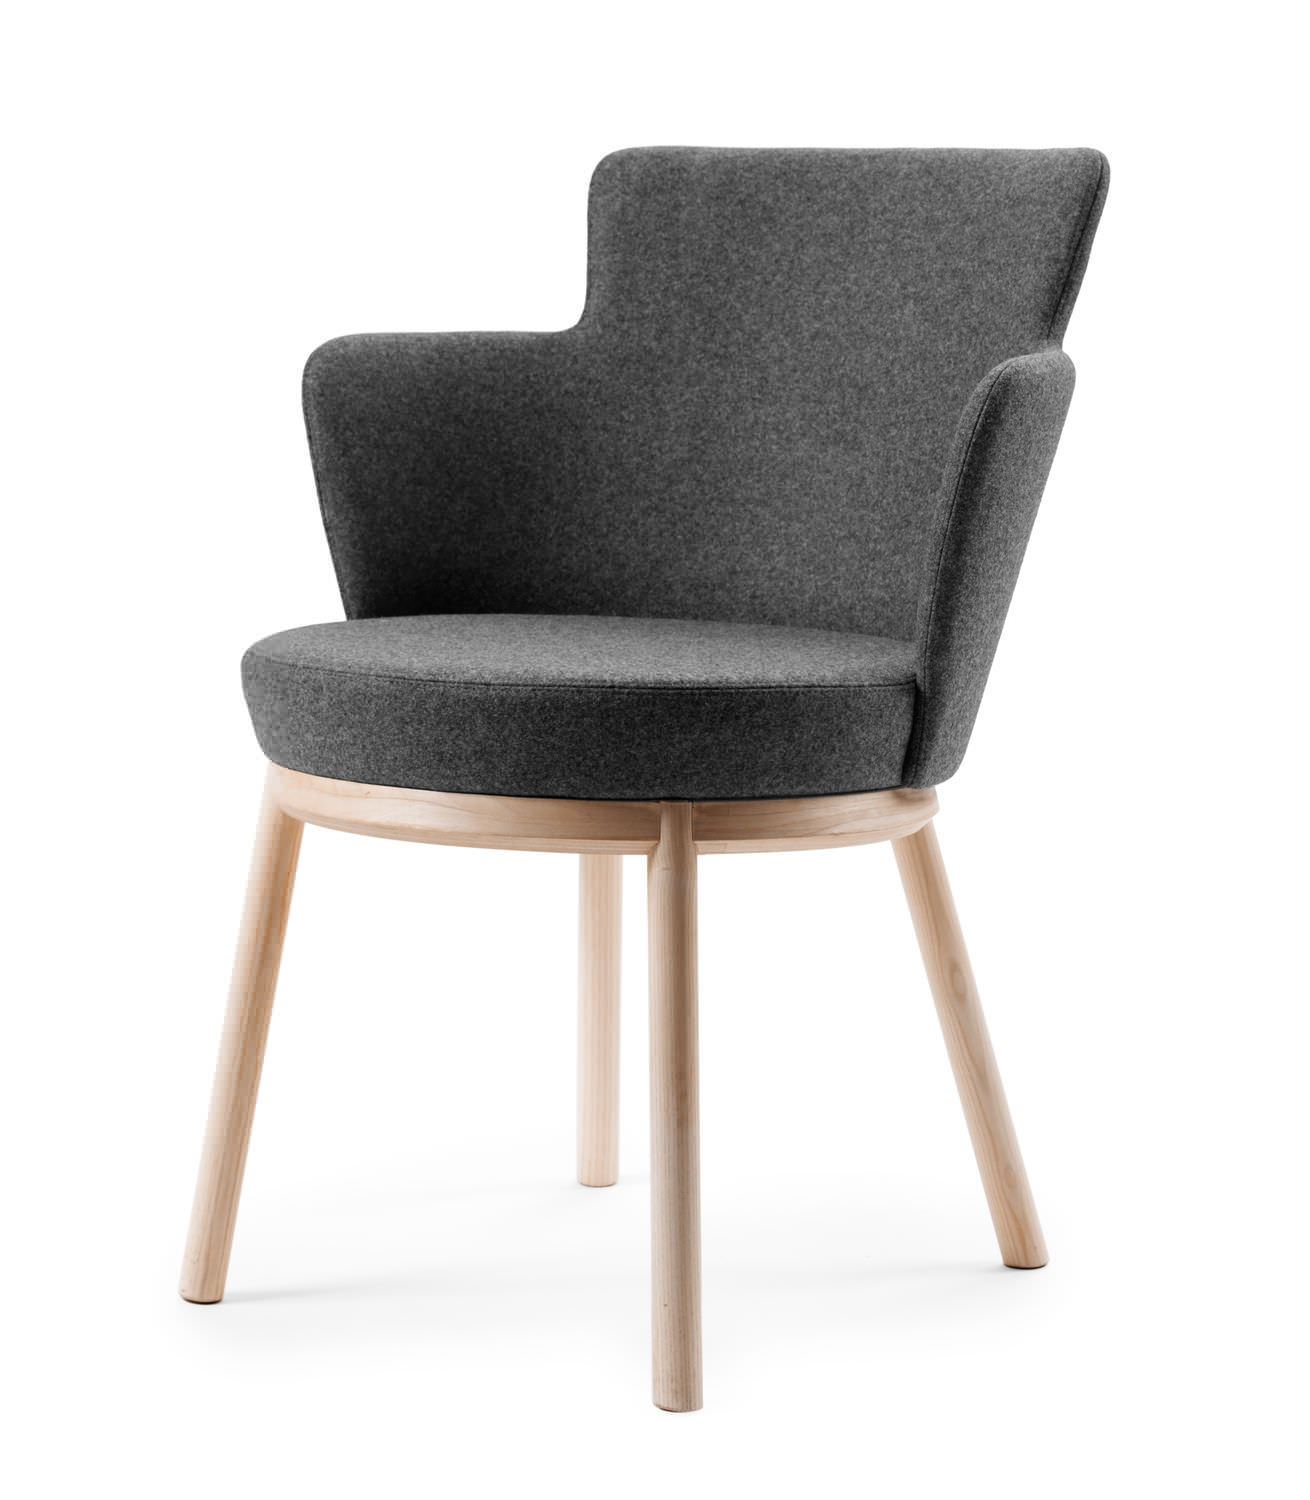 ... Contemporary Chair / Upholstered / With Armrests / Fabric